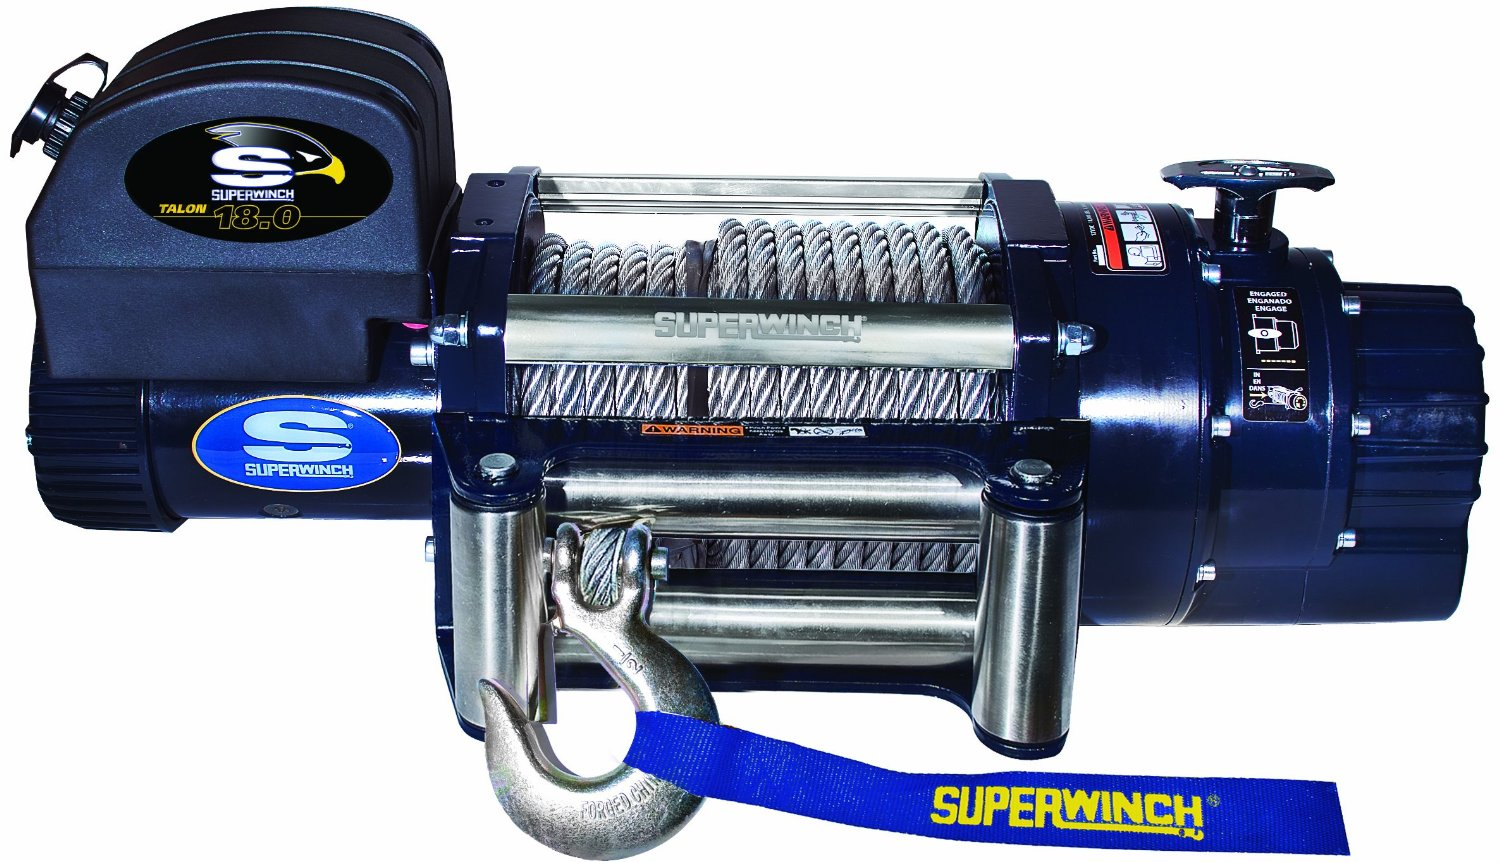 Superwinch 1618200 Talon 18.0, 12 VDC winch, 18,000 lb 8,165 kg capacity with roller fairlead by Superwinch